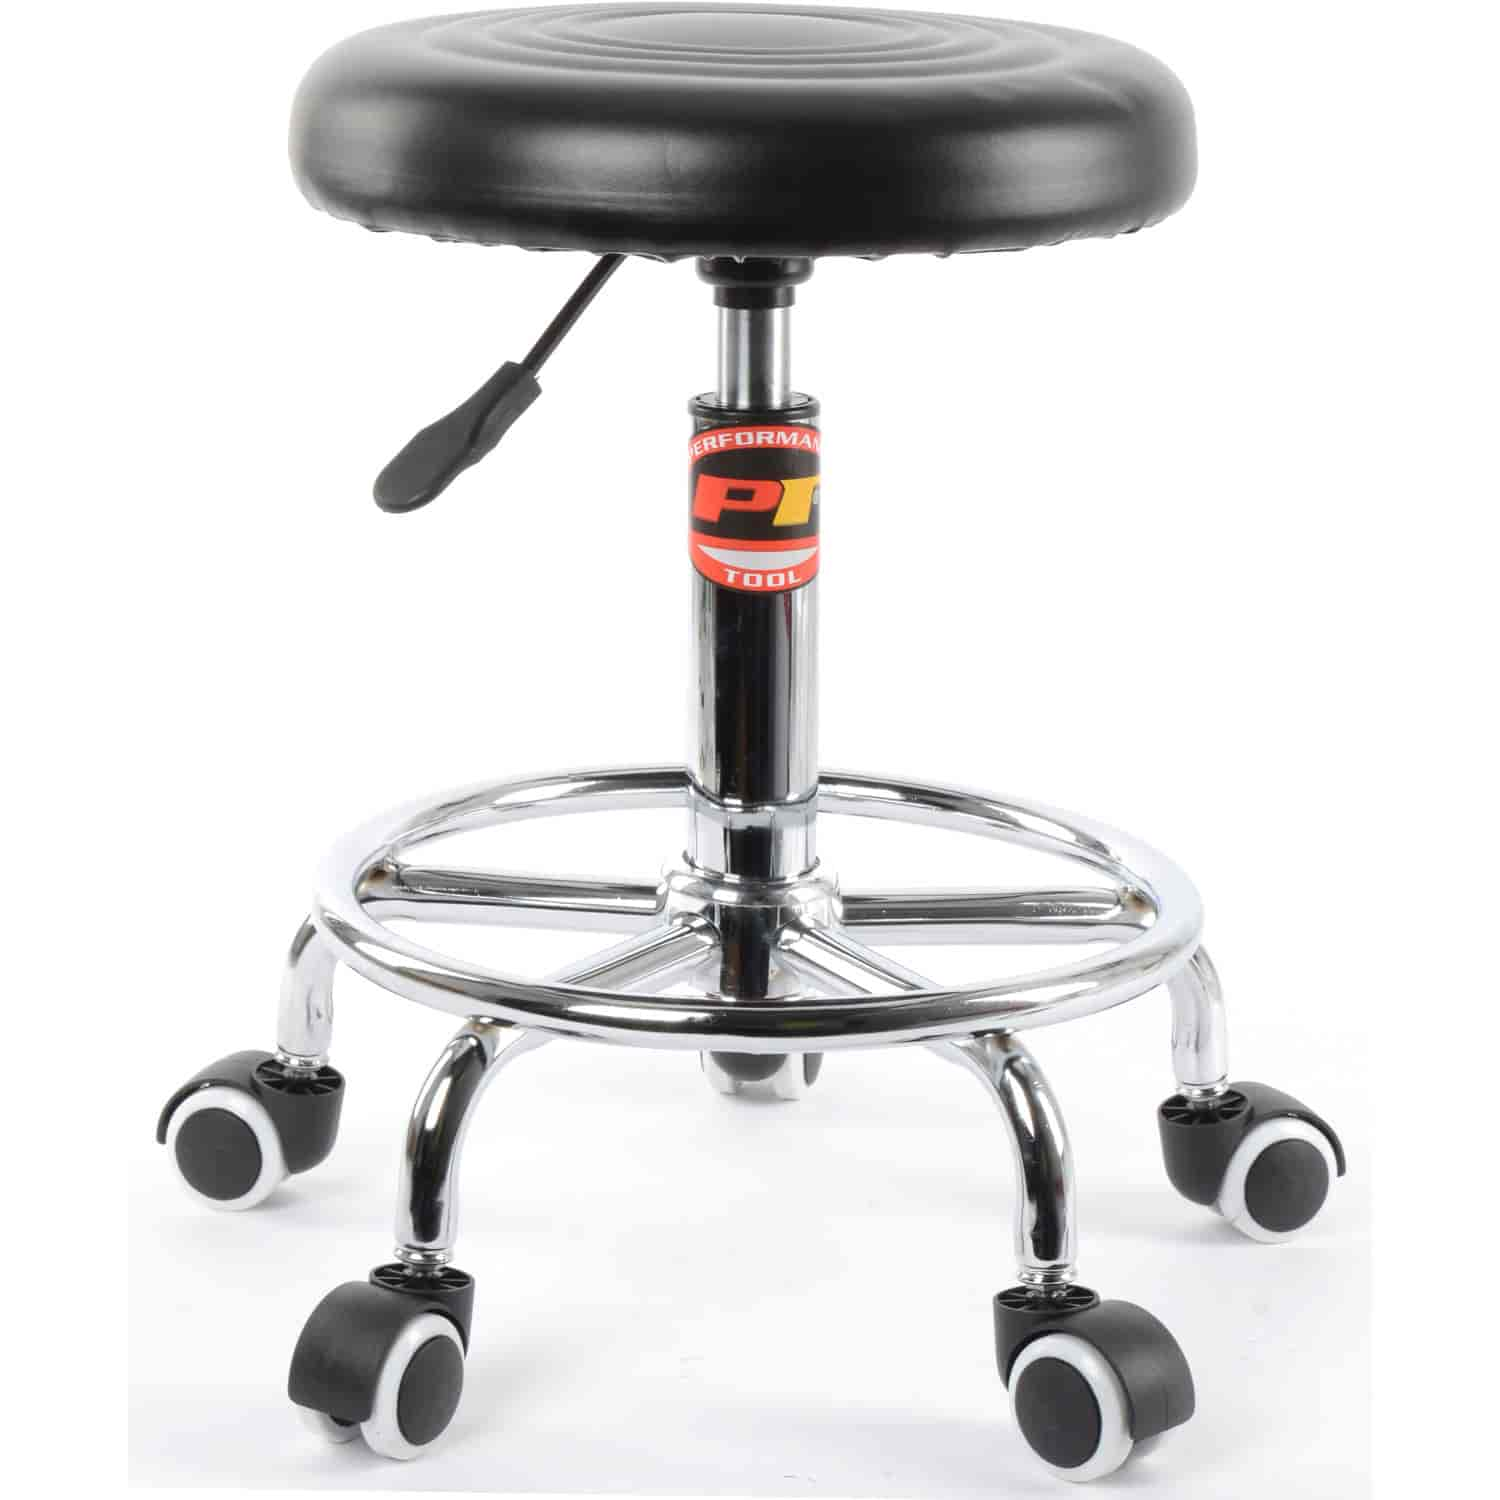 Prime Jegs Pneumatic Rolling Stool 250 Lb Capacity Adjustable From 19 In To 24 In Ibusinesslaw Wood Chair Design Ideas Ibusinesslaworg